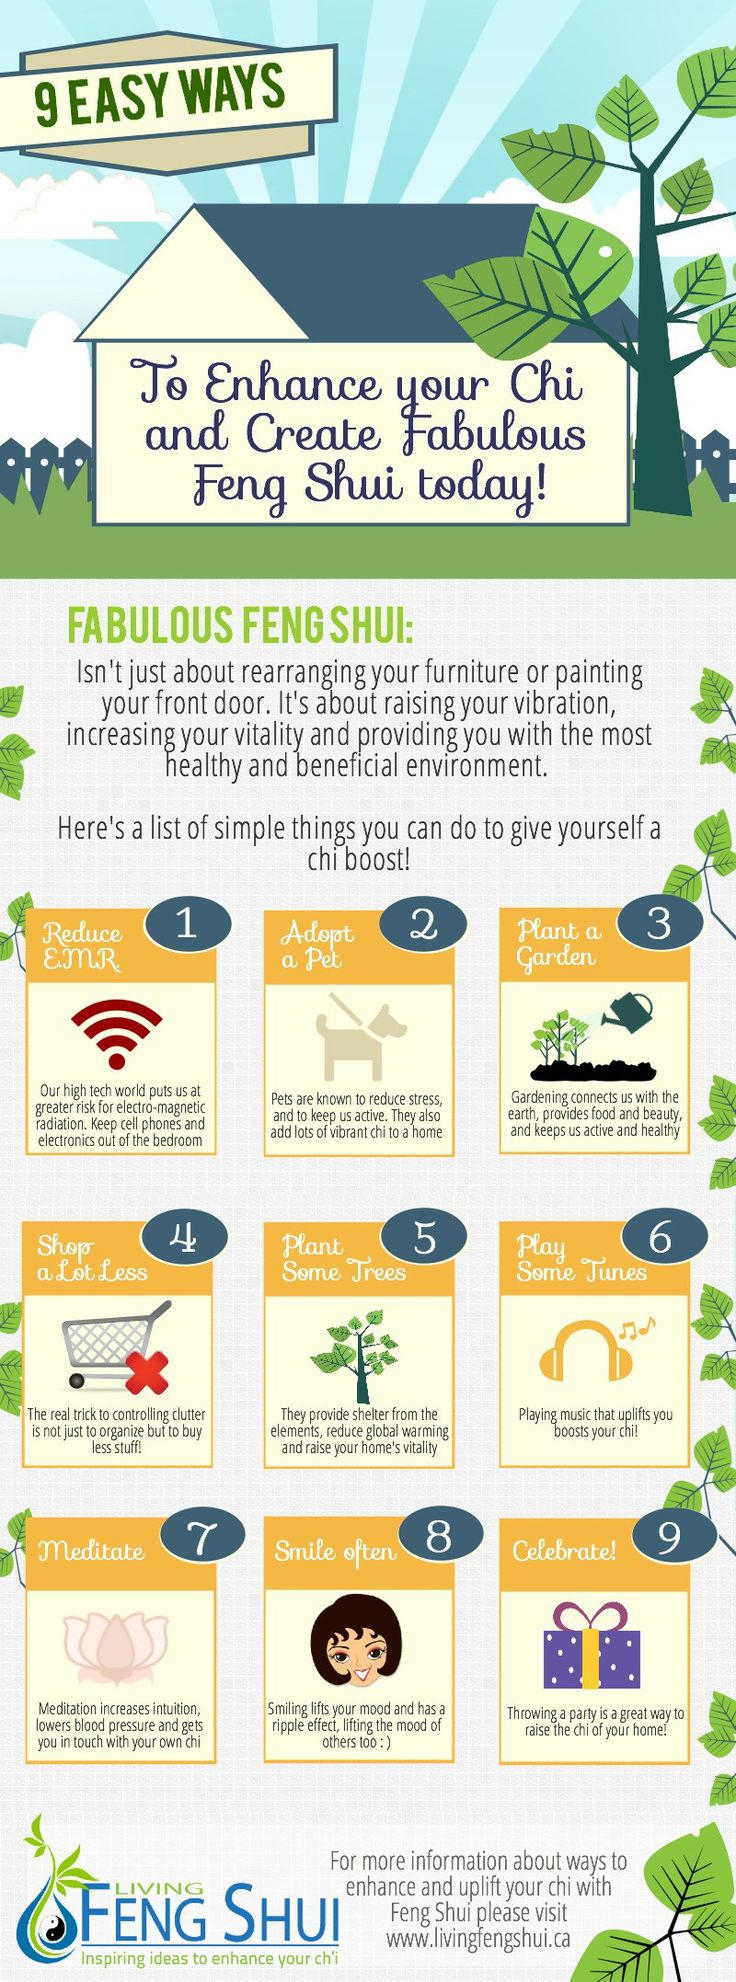 Best Feng Shui Images On Pinterest Feng Shui Feng Shui Tips - Feng shui tips